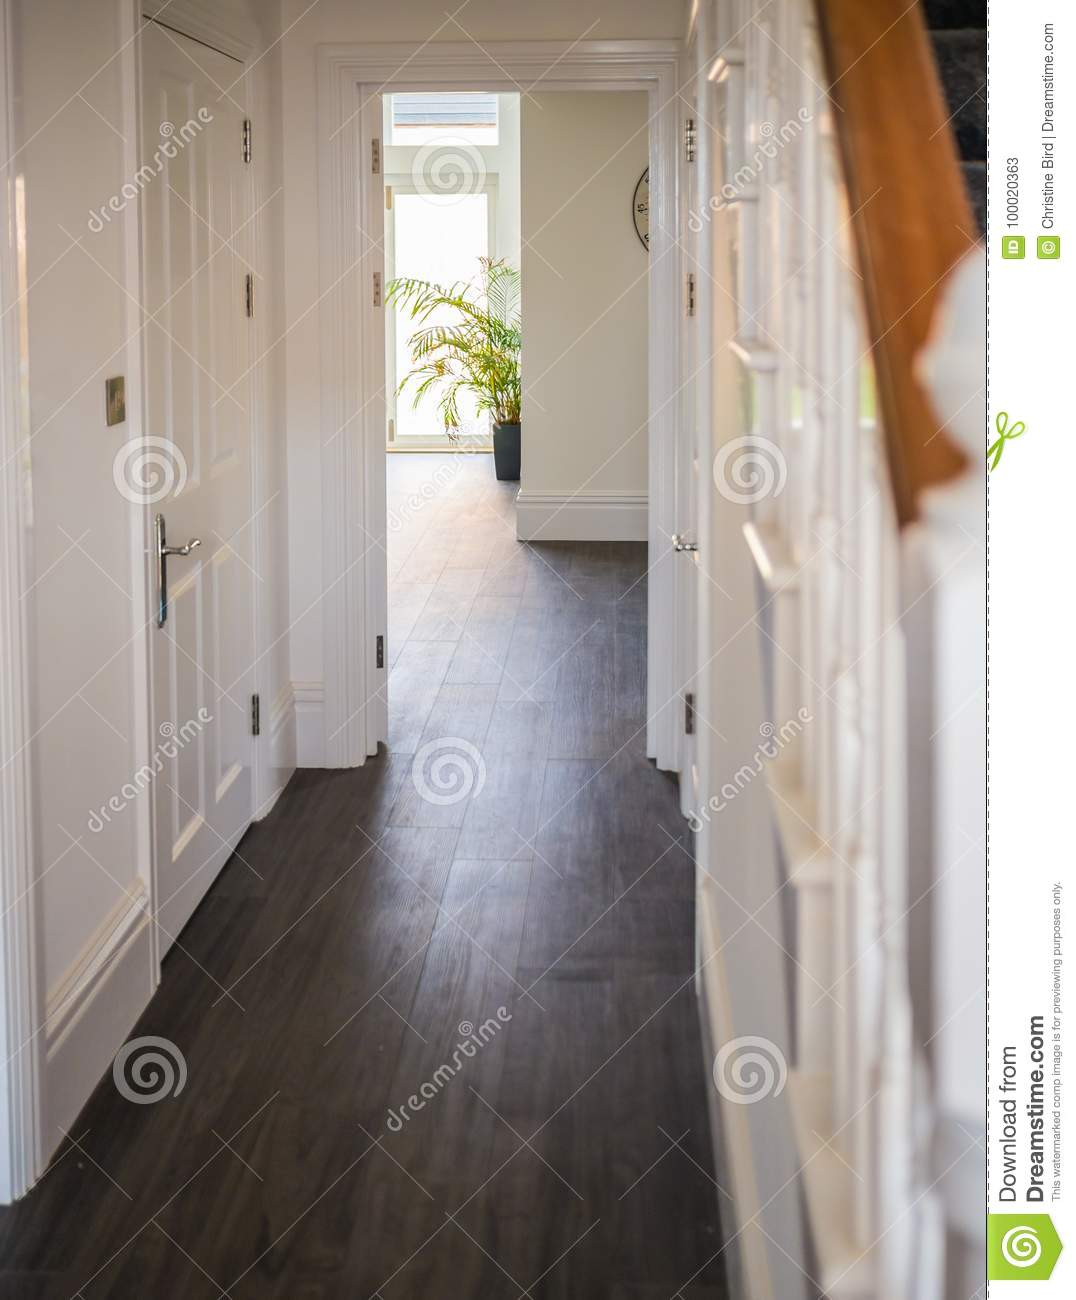 Natural light wood floor Oak Natural Light Illuminating Hallway In Home Depositphotos Natural Light Illuminating Hallway In Home Stock Image Image